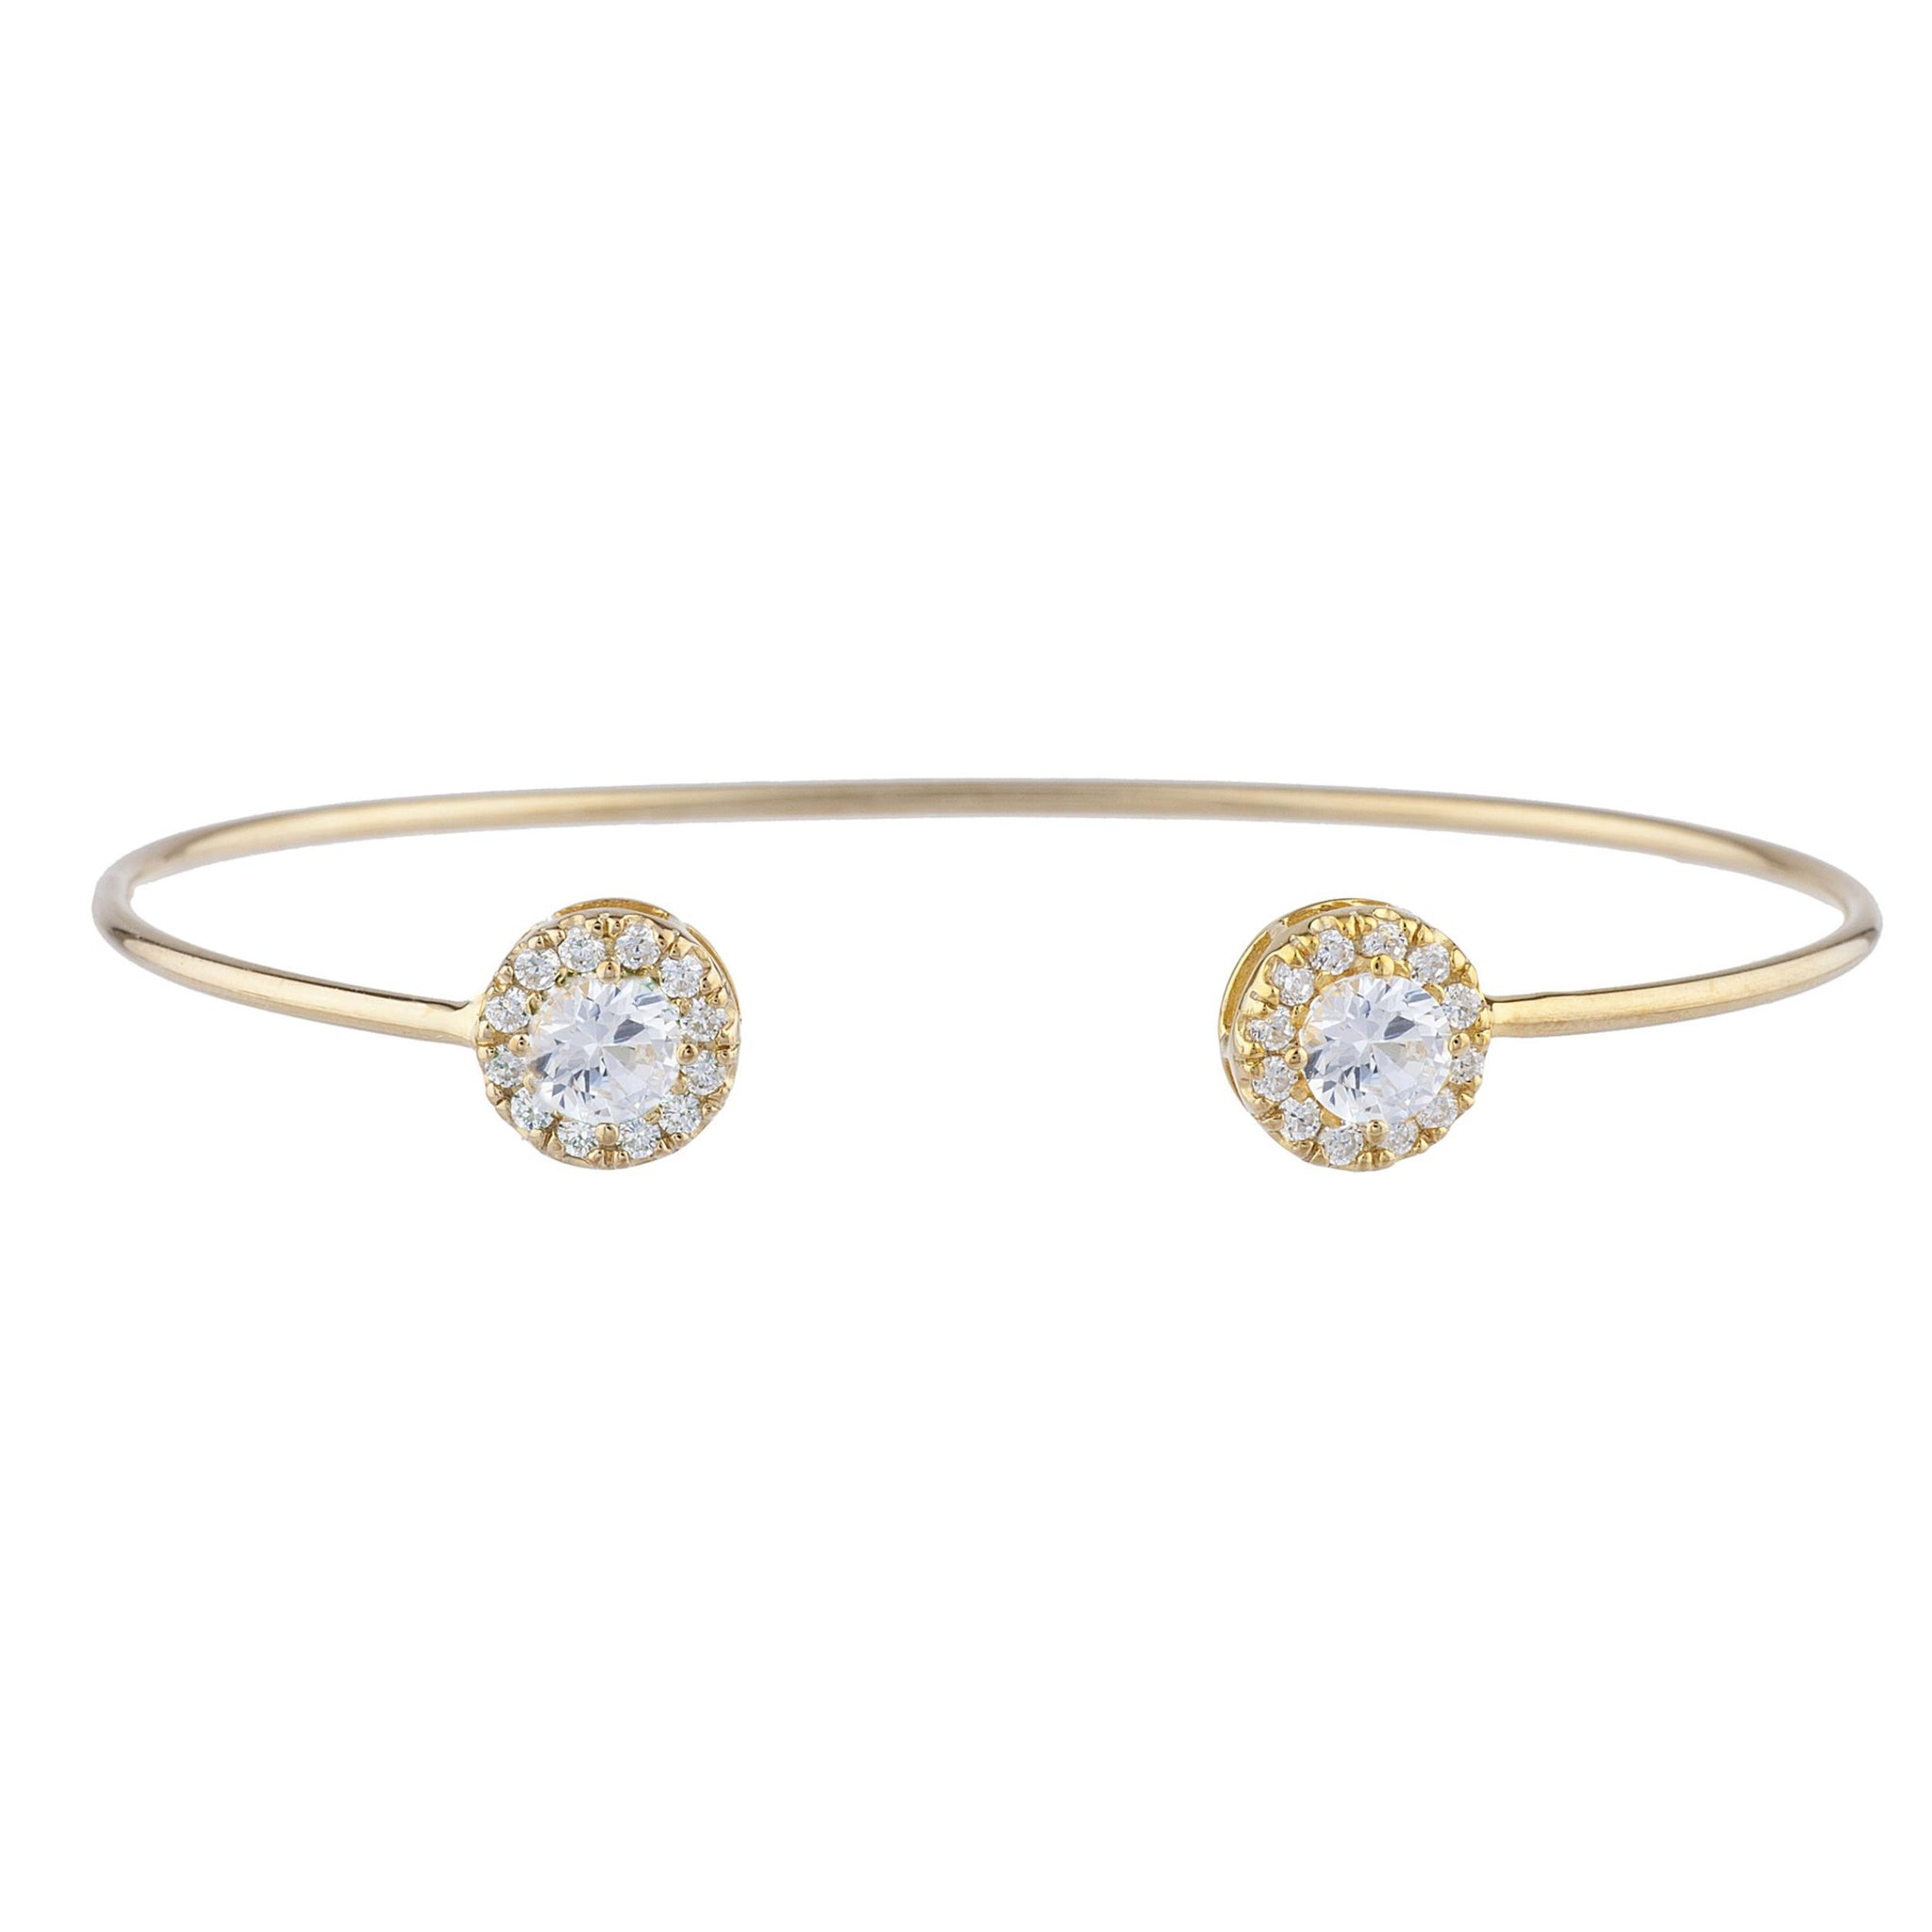 14Kt Gold Zirconia Halo Design Bangle Bracelet